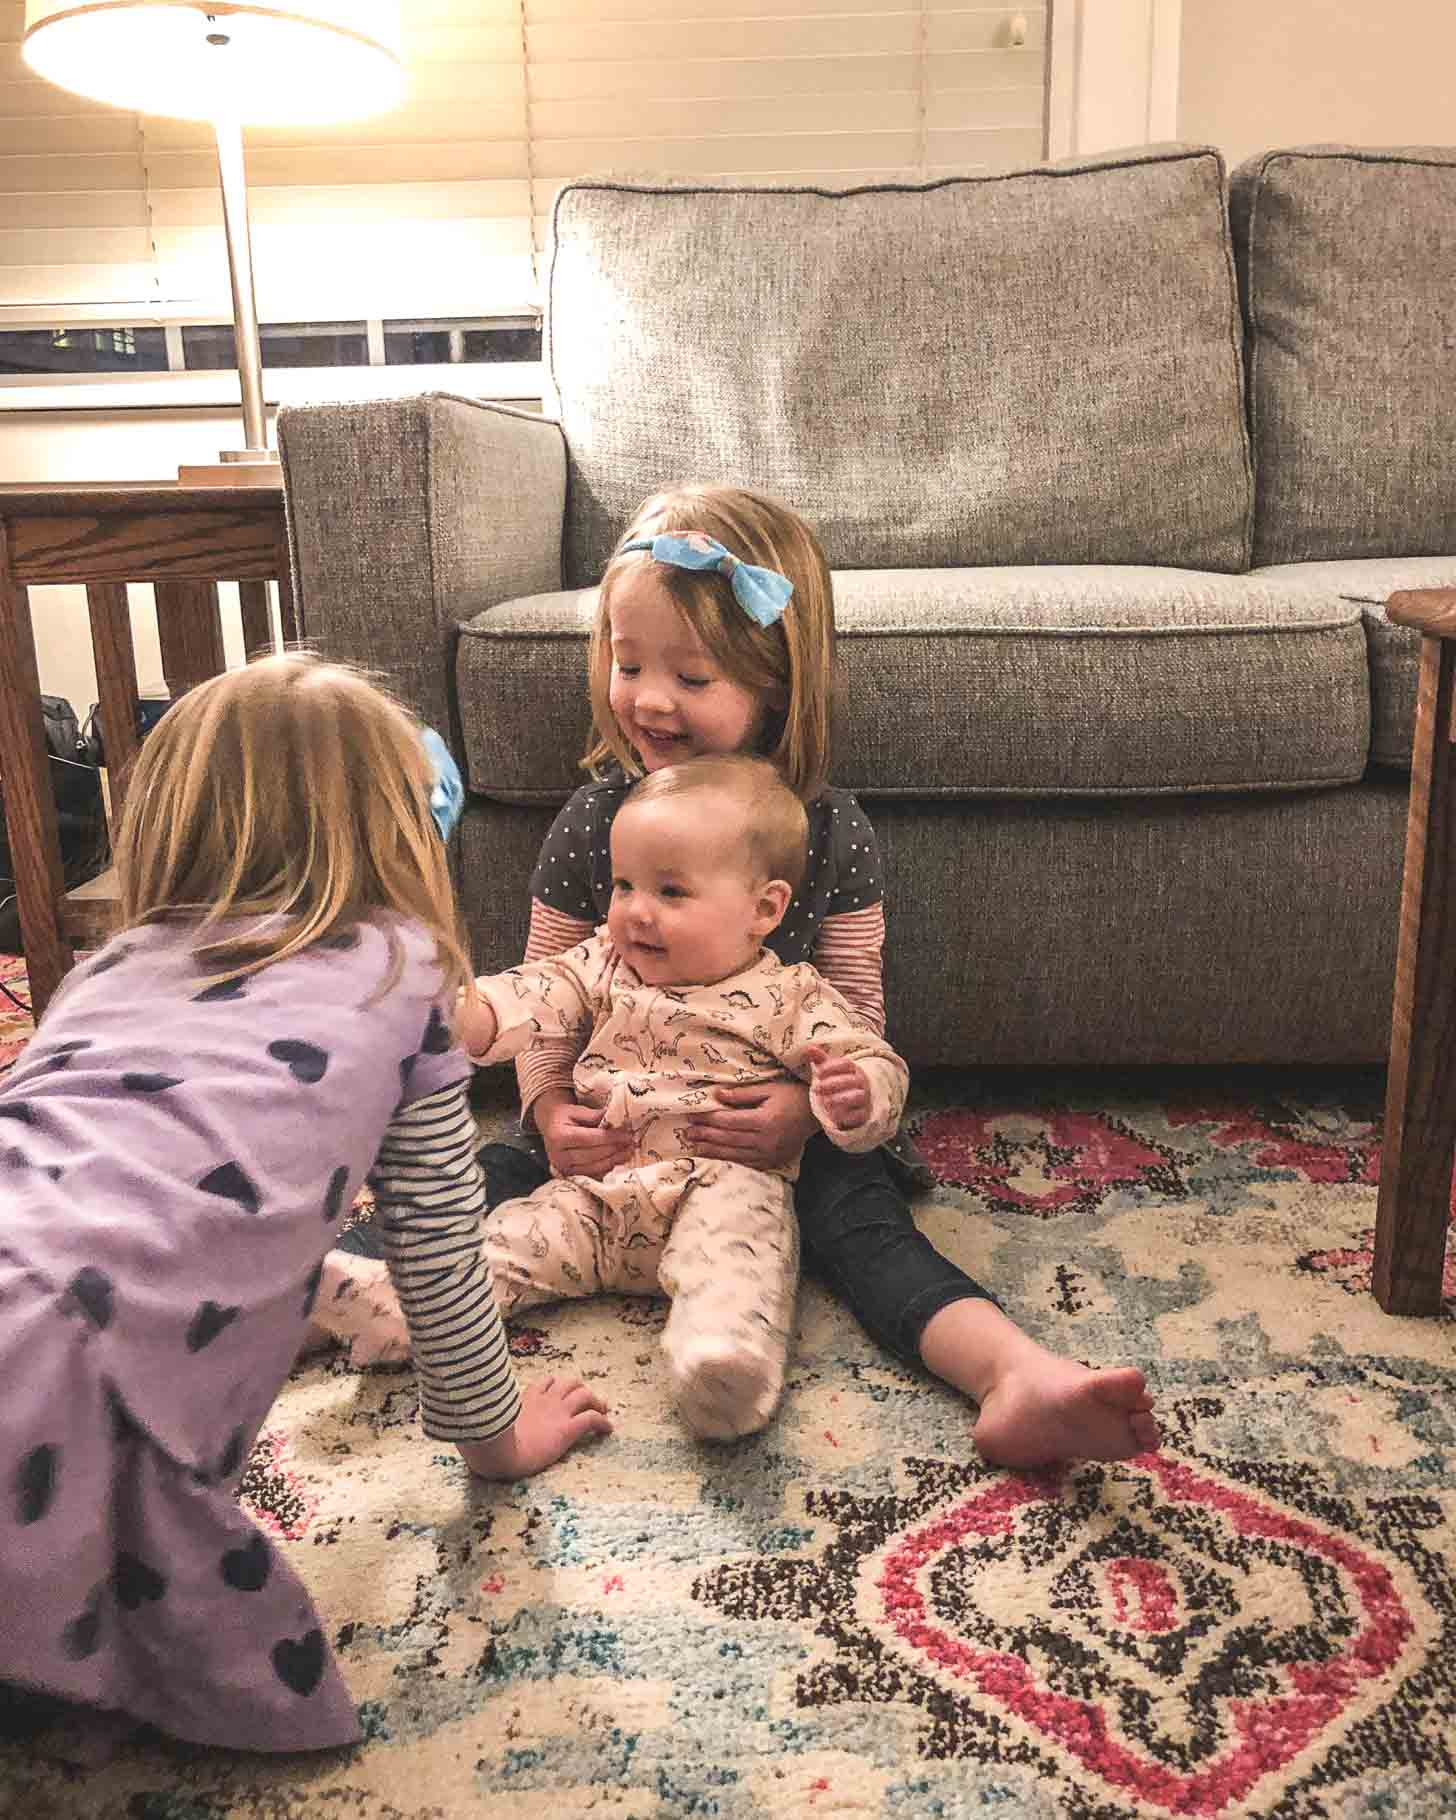 Two girls and a baby on a rug